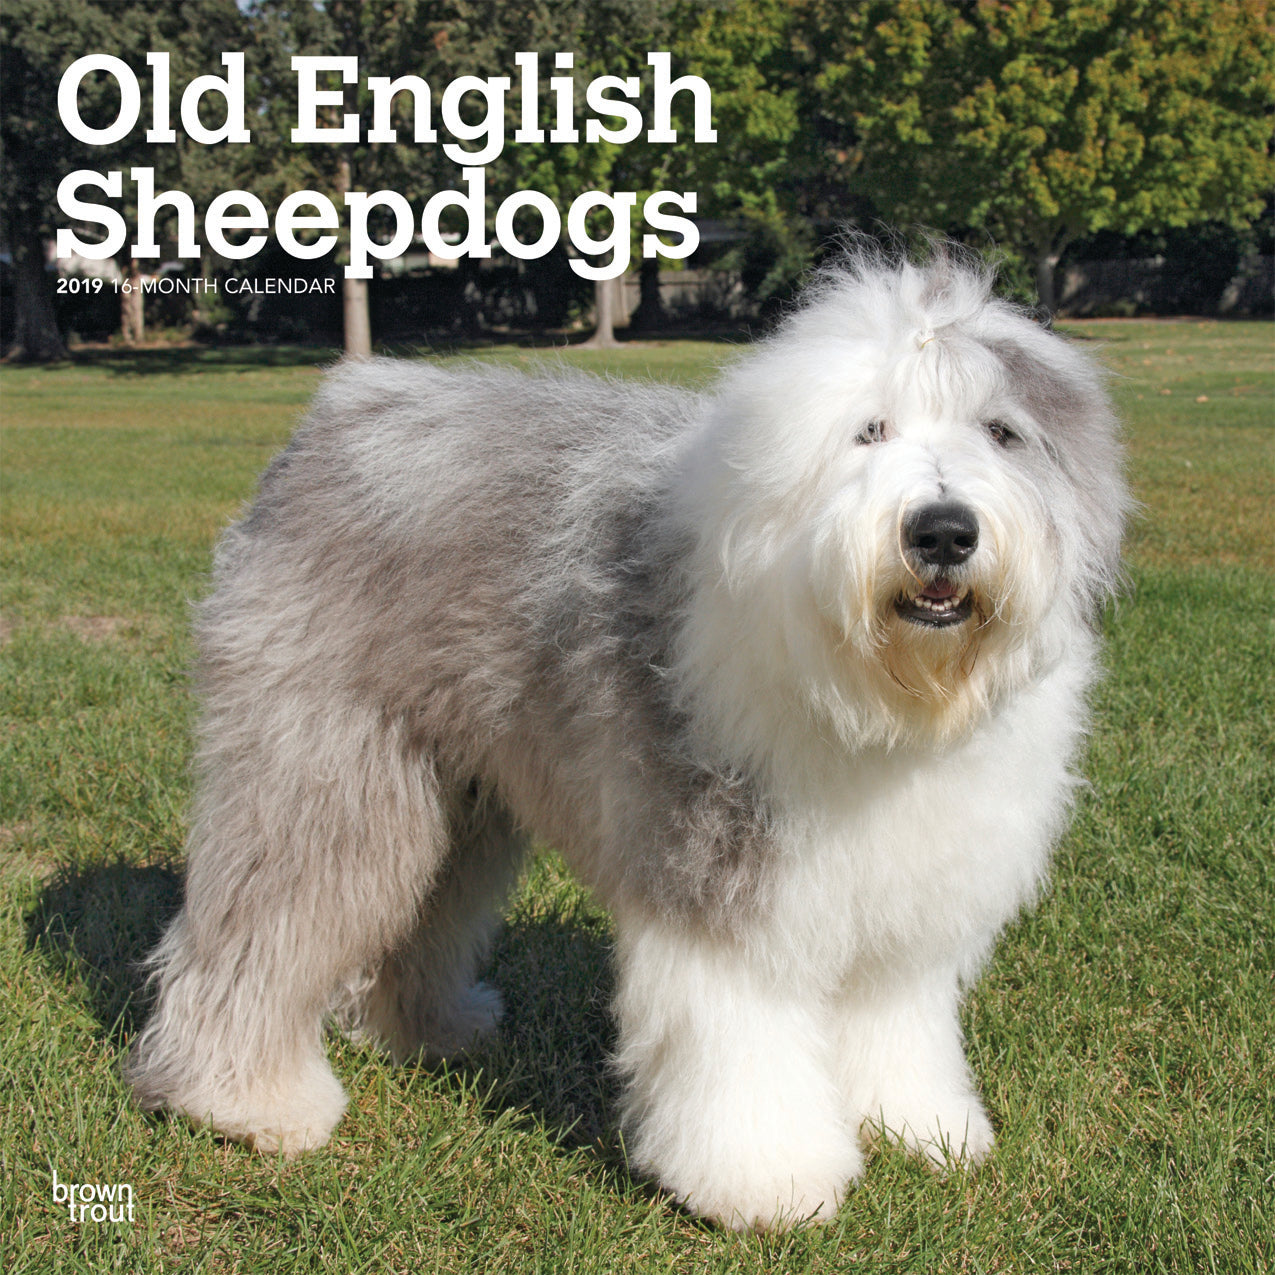 Old English Sheepdogs 2019 Wall Calendar